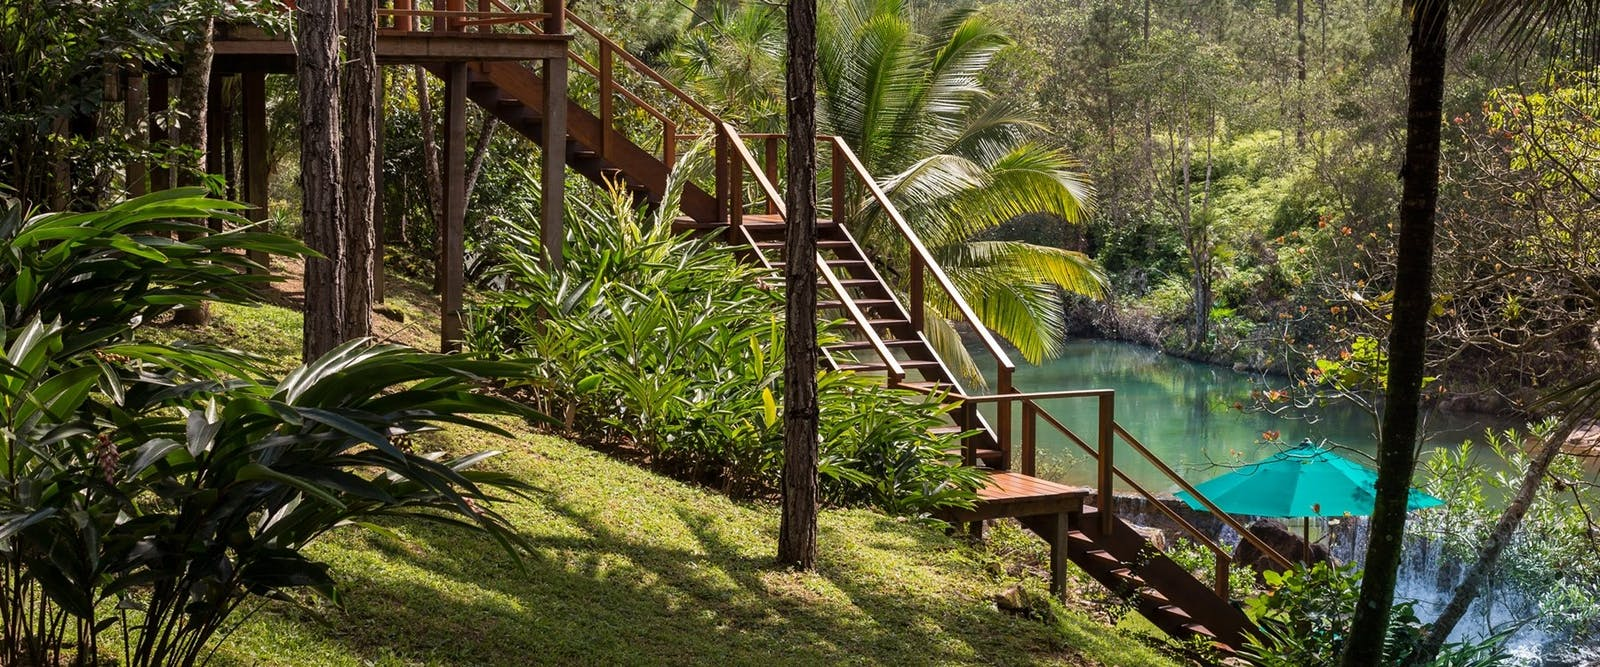 beautiful gardens, Blancaneaux Lodge, Belize